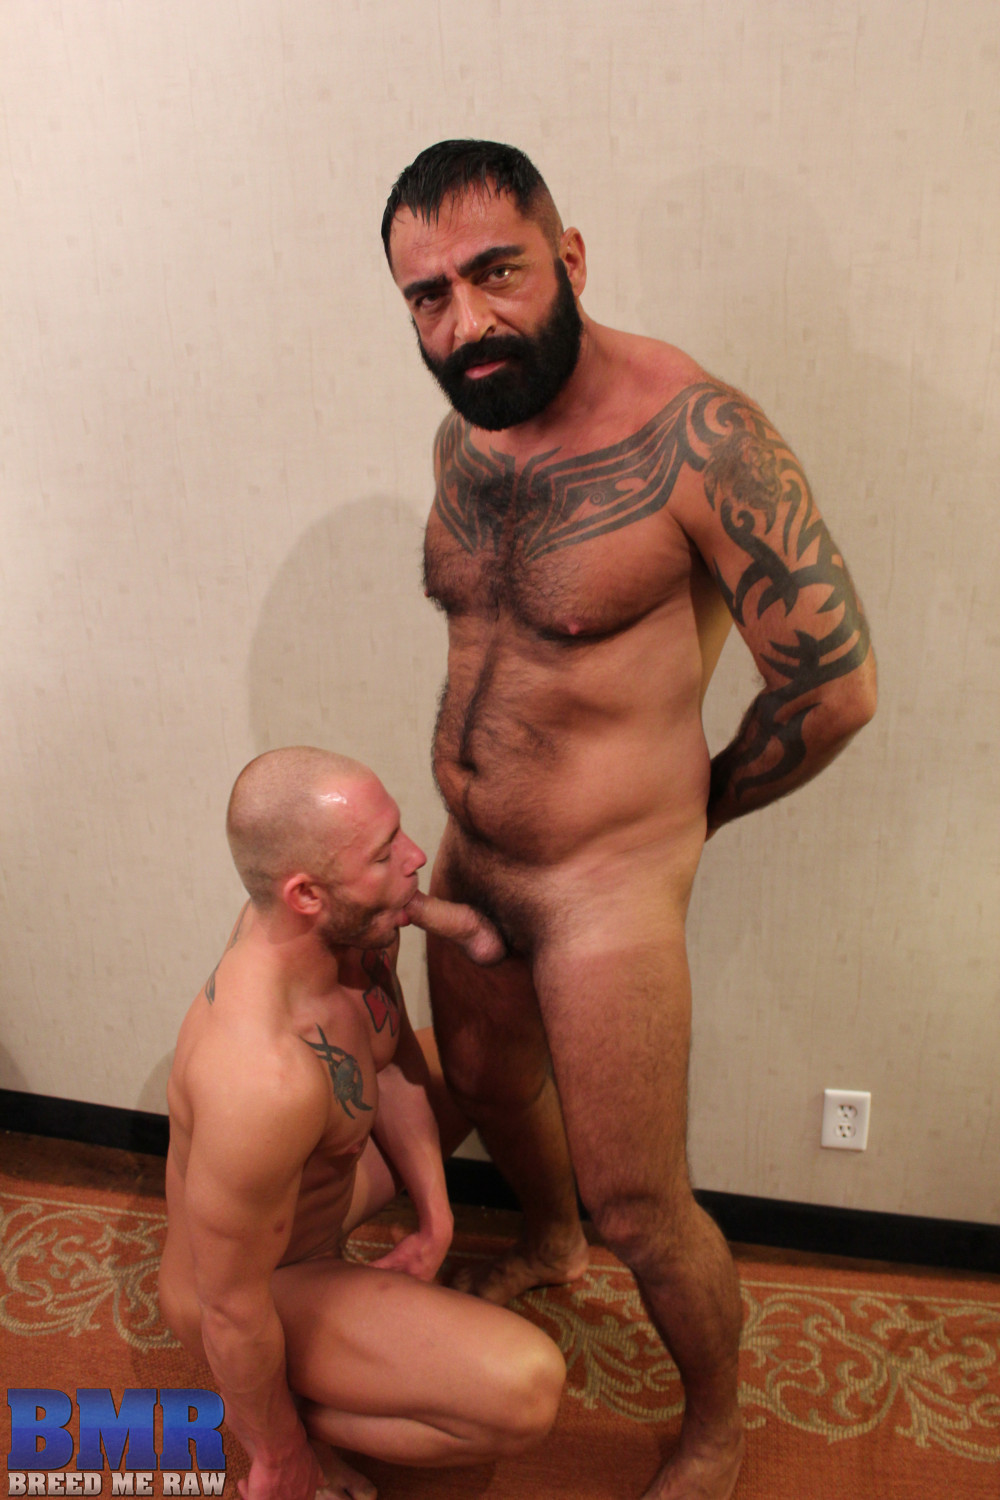 Breed-Me-Raw-Tom-Colt-and-Preston-Johnson-Hairy-Daddy-Barebacking-Amateur-Gay-Porn-01 Amateur Hairy Tatted Daddy Barebacking a Hot Young Smooth Bottom